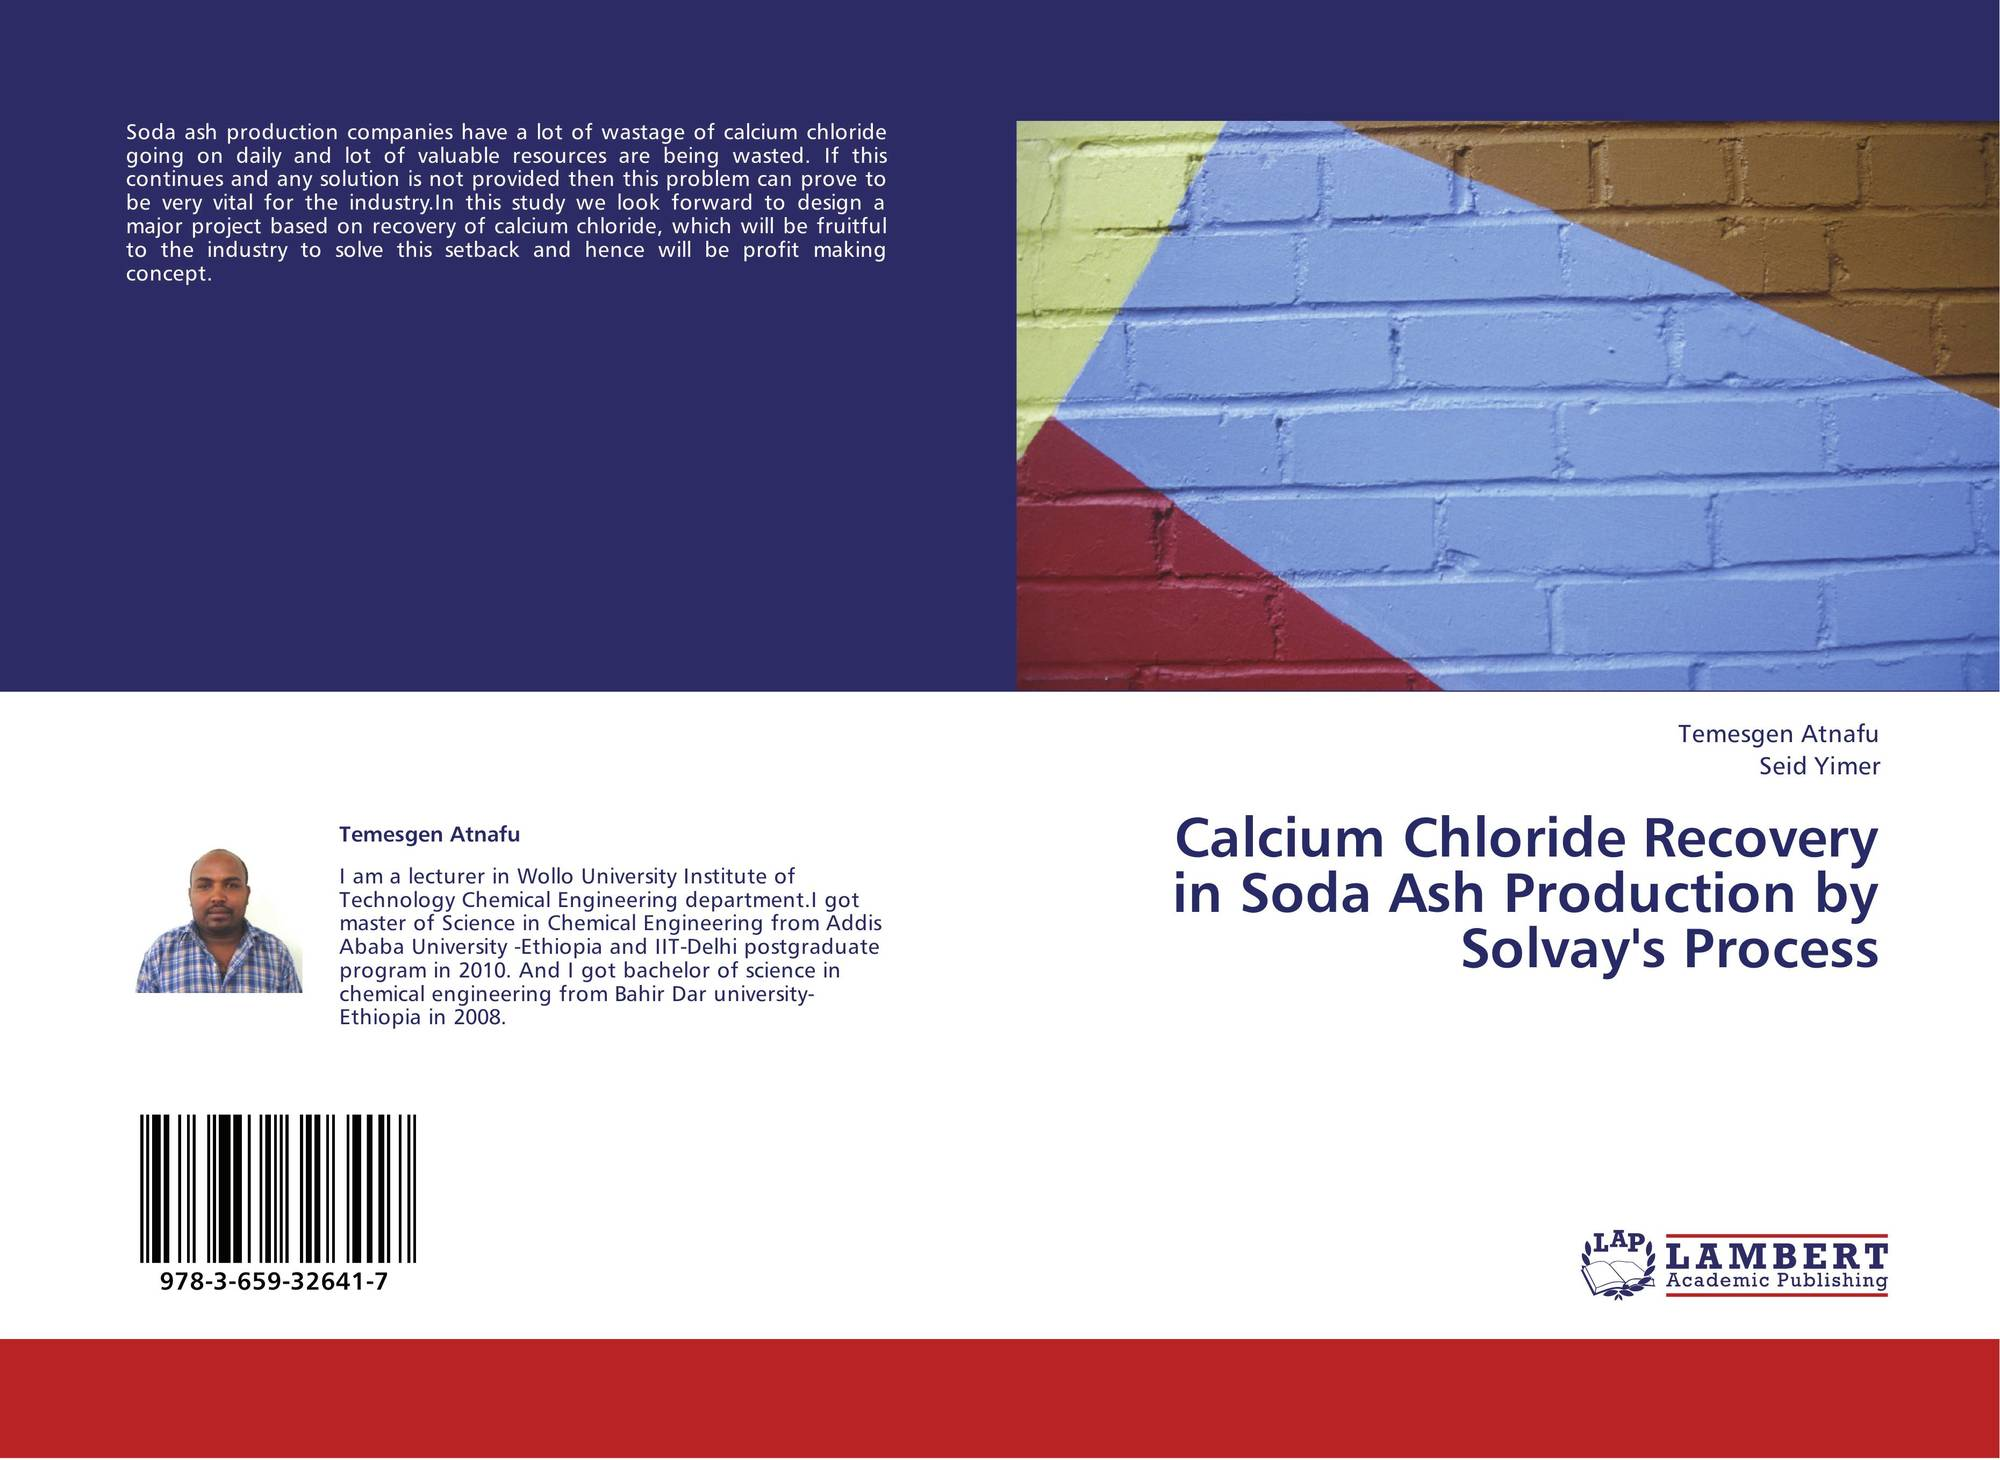 analysis of soda ash Experiment no 5 analysis of soda ash by double acid-base titration group no  4 date due: february 5, 2015 group members: date performed: january 22,.